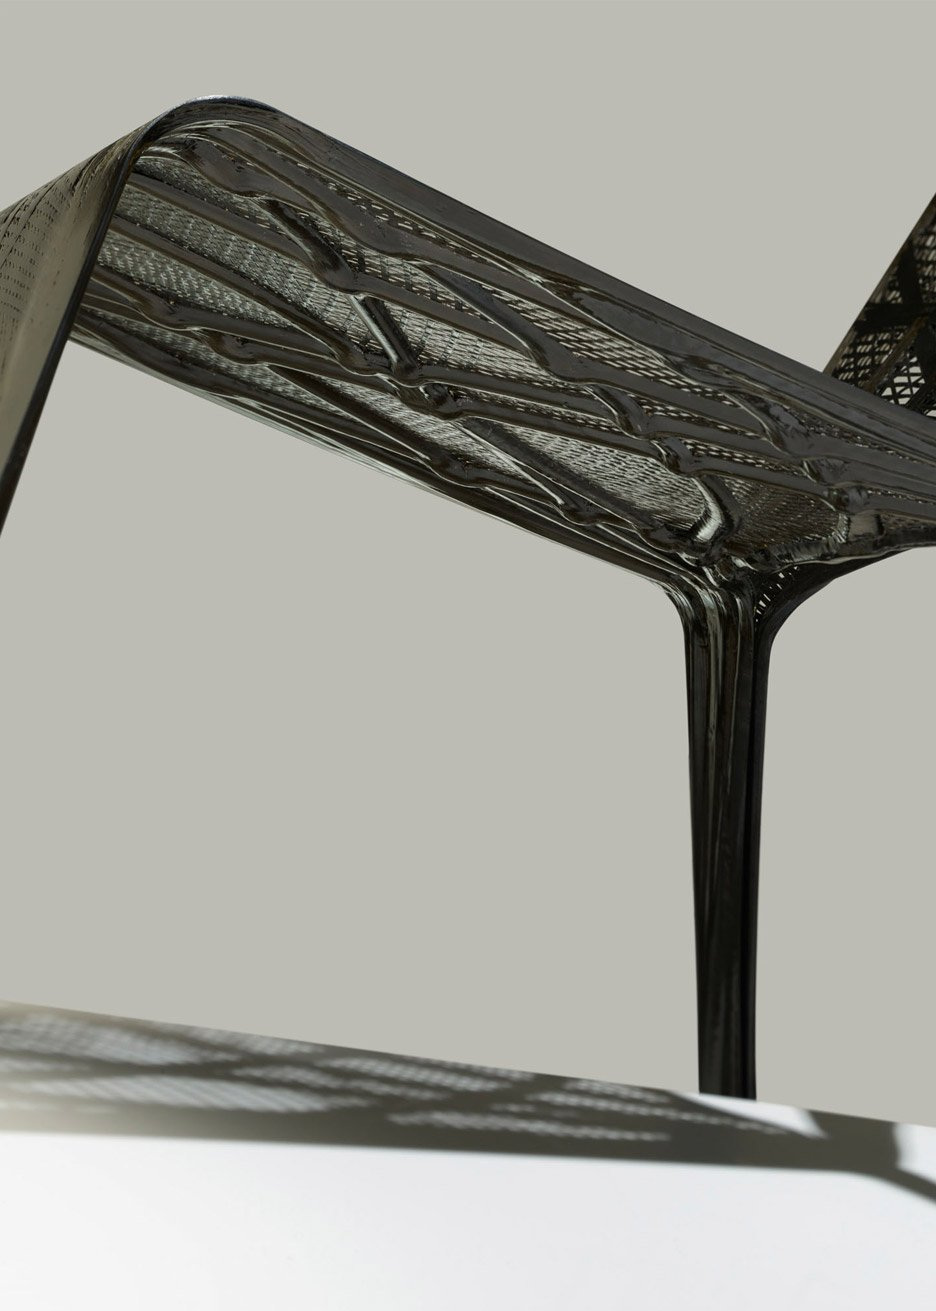 Technocast: carbon fibre furniture by Marleen Kaptein and NLR